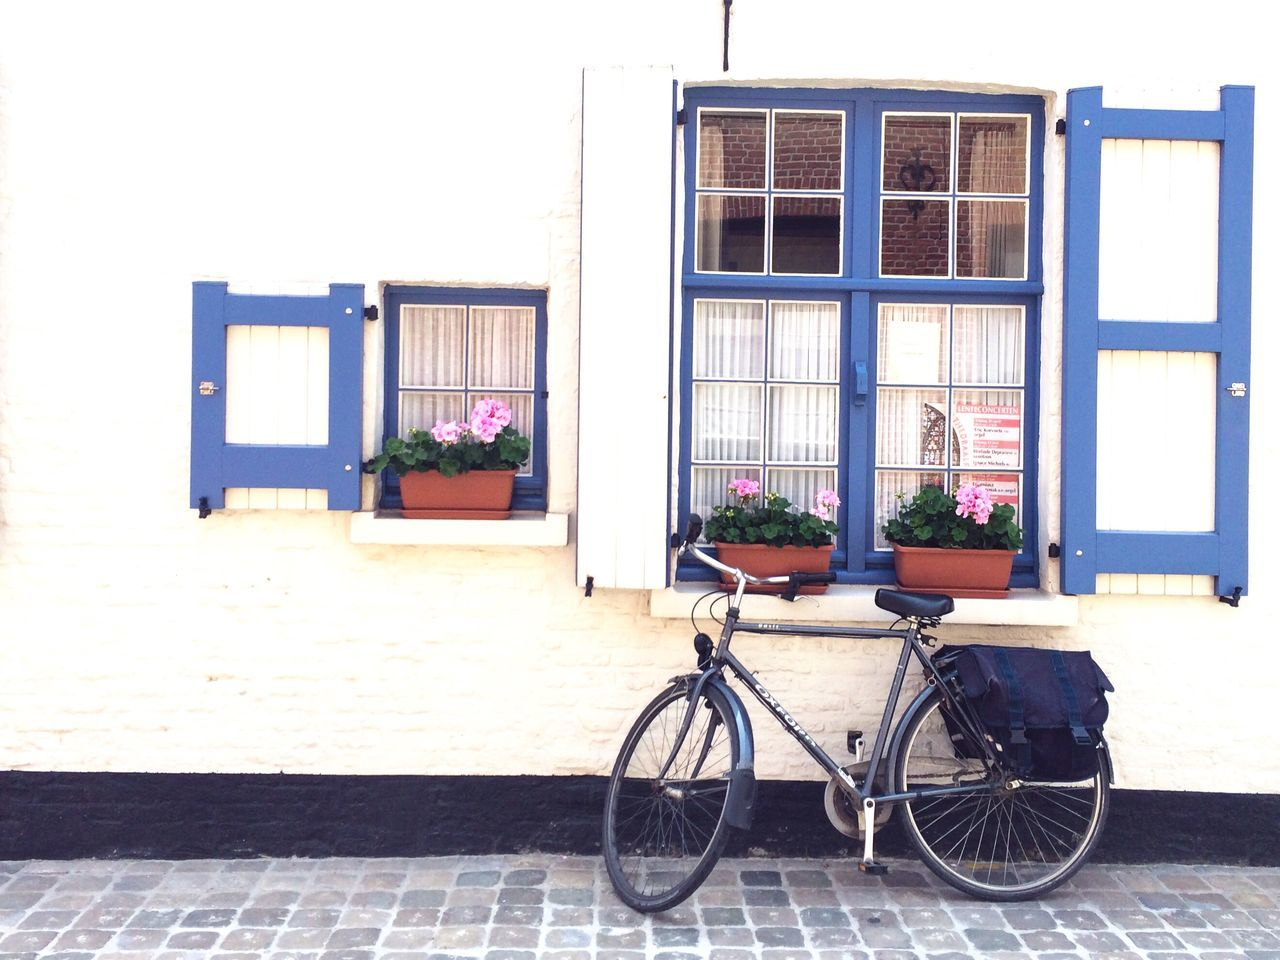 White House Blue Decorations White And Blue Bicycle Cute Place Old House Small Flowers In Window